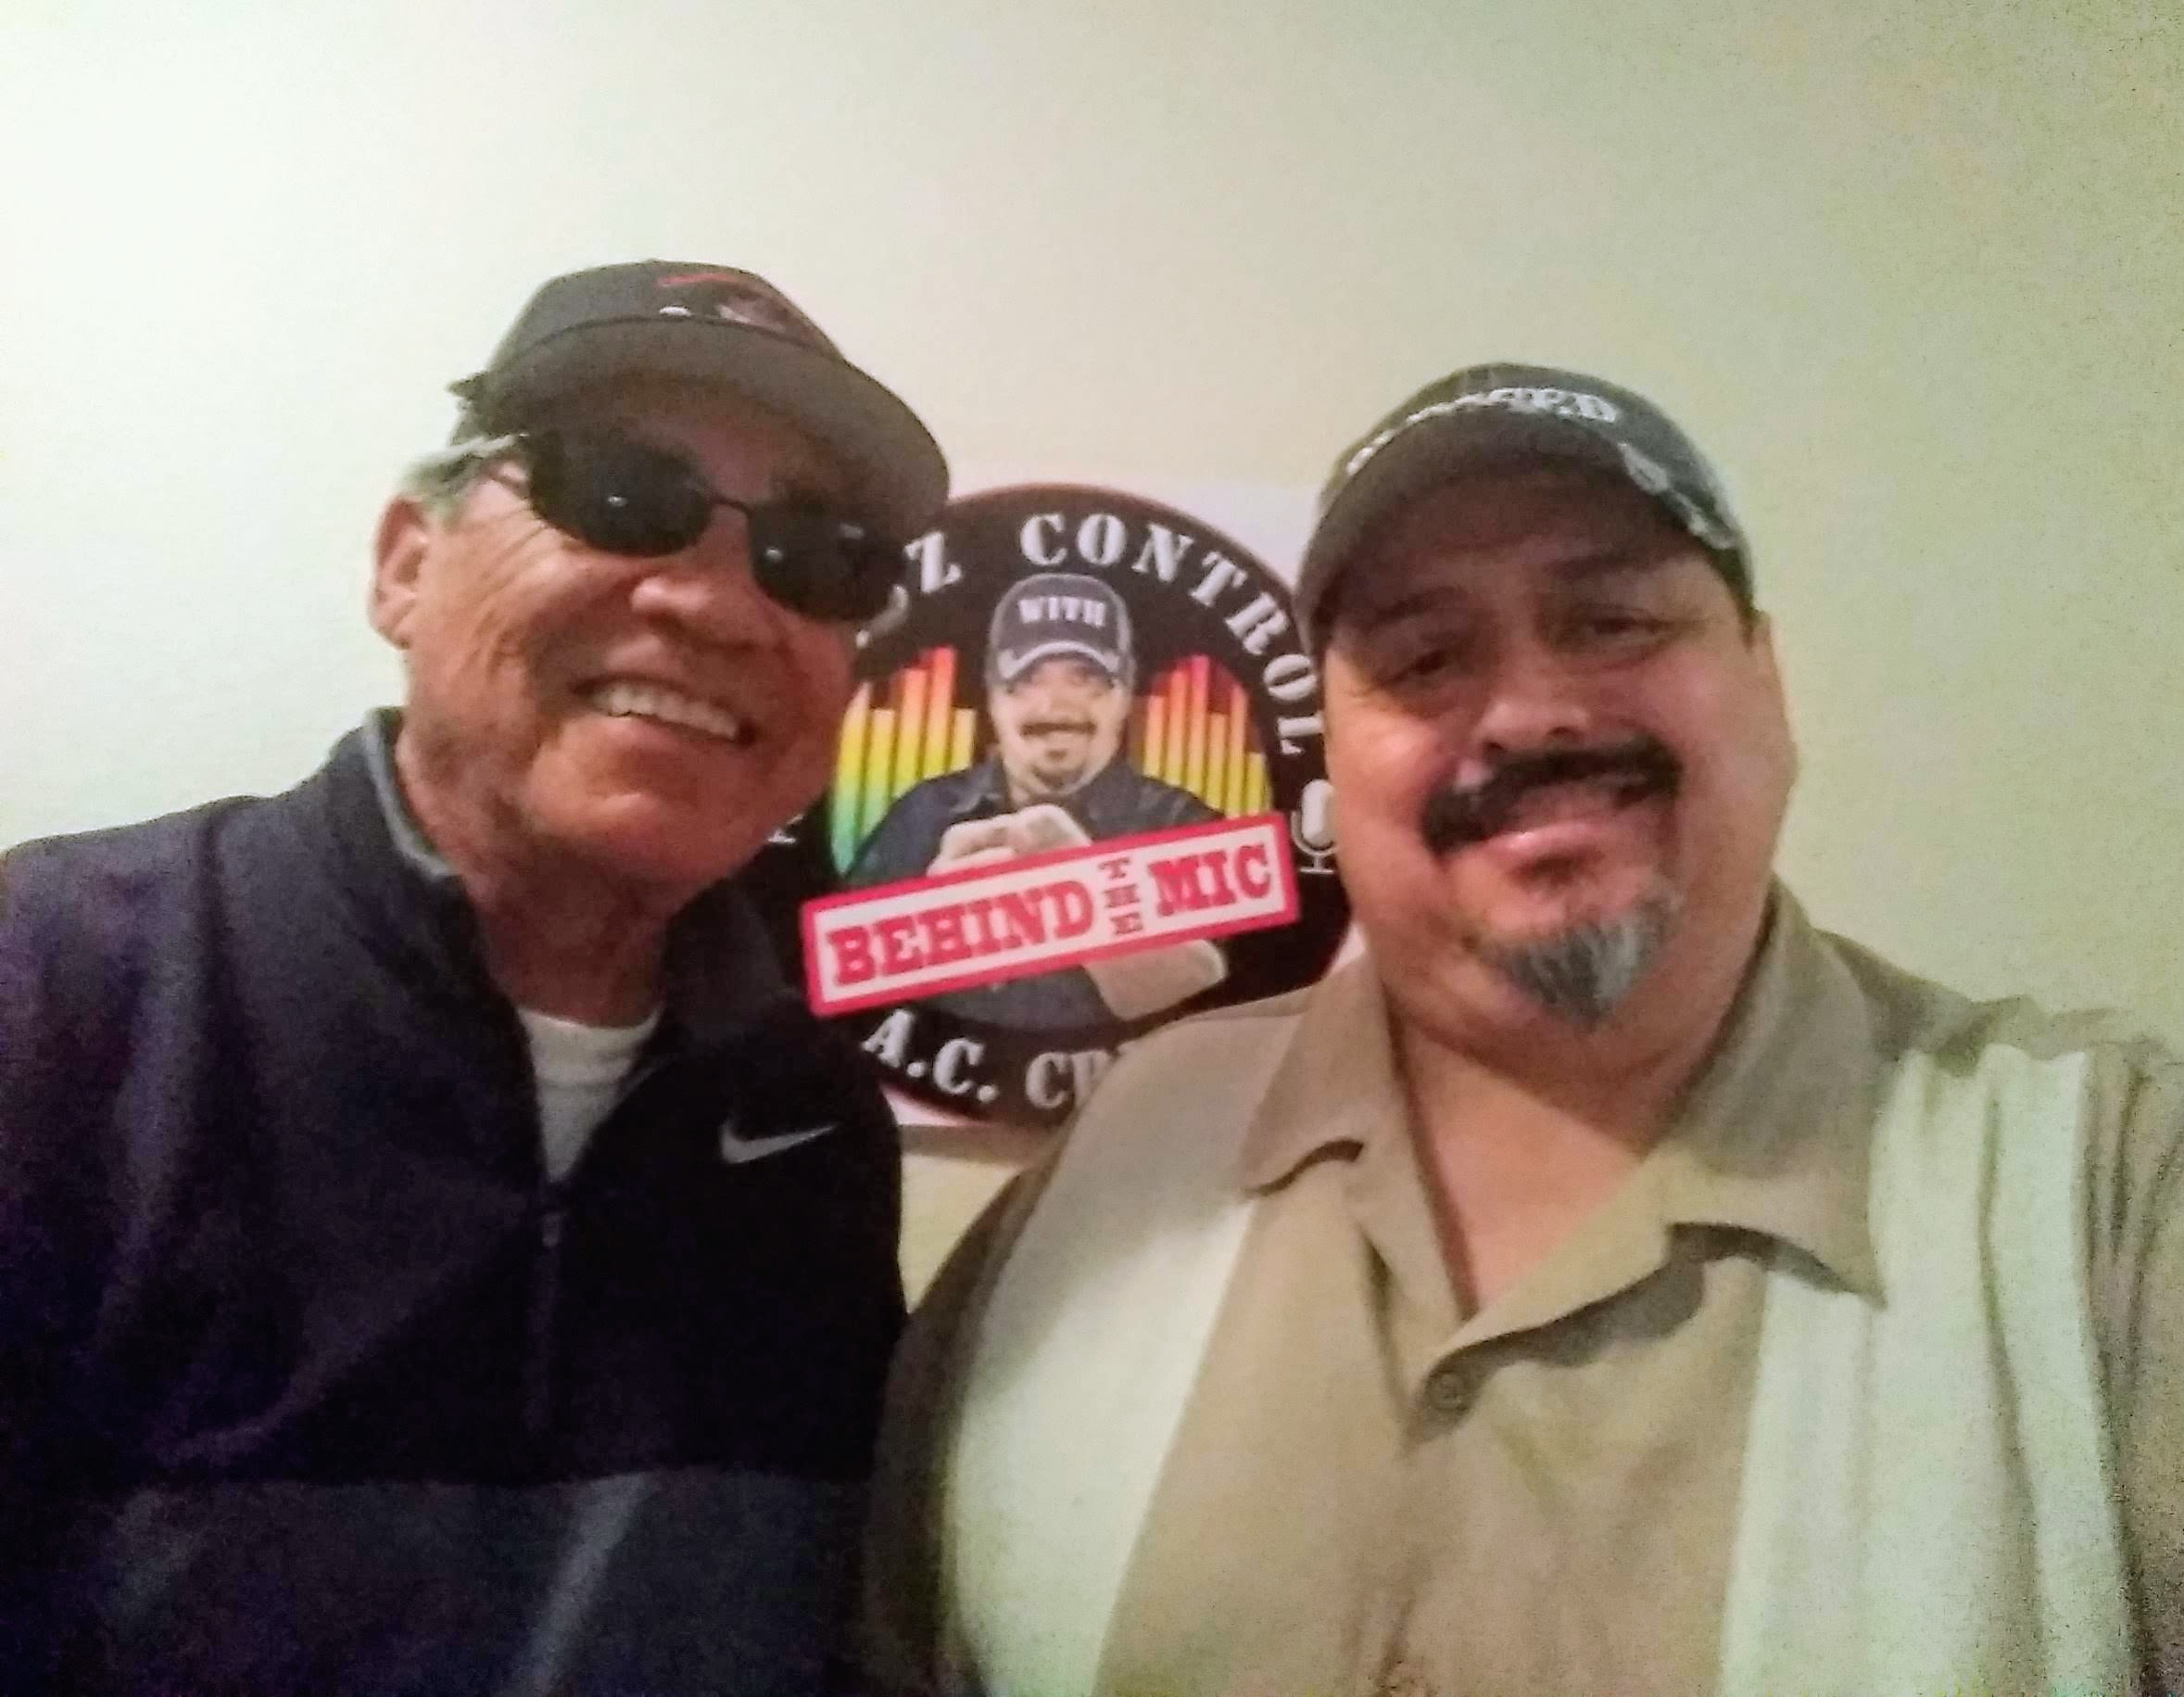 Behind the Mic with Ruben Ramos